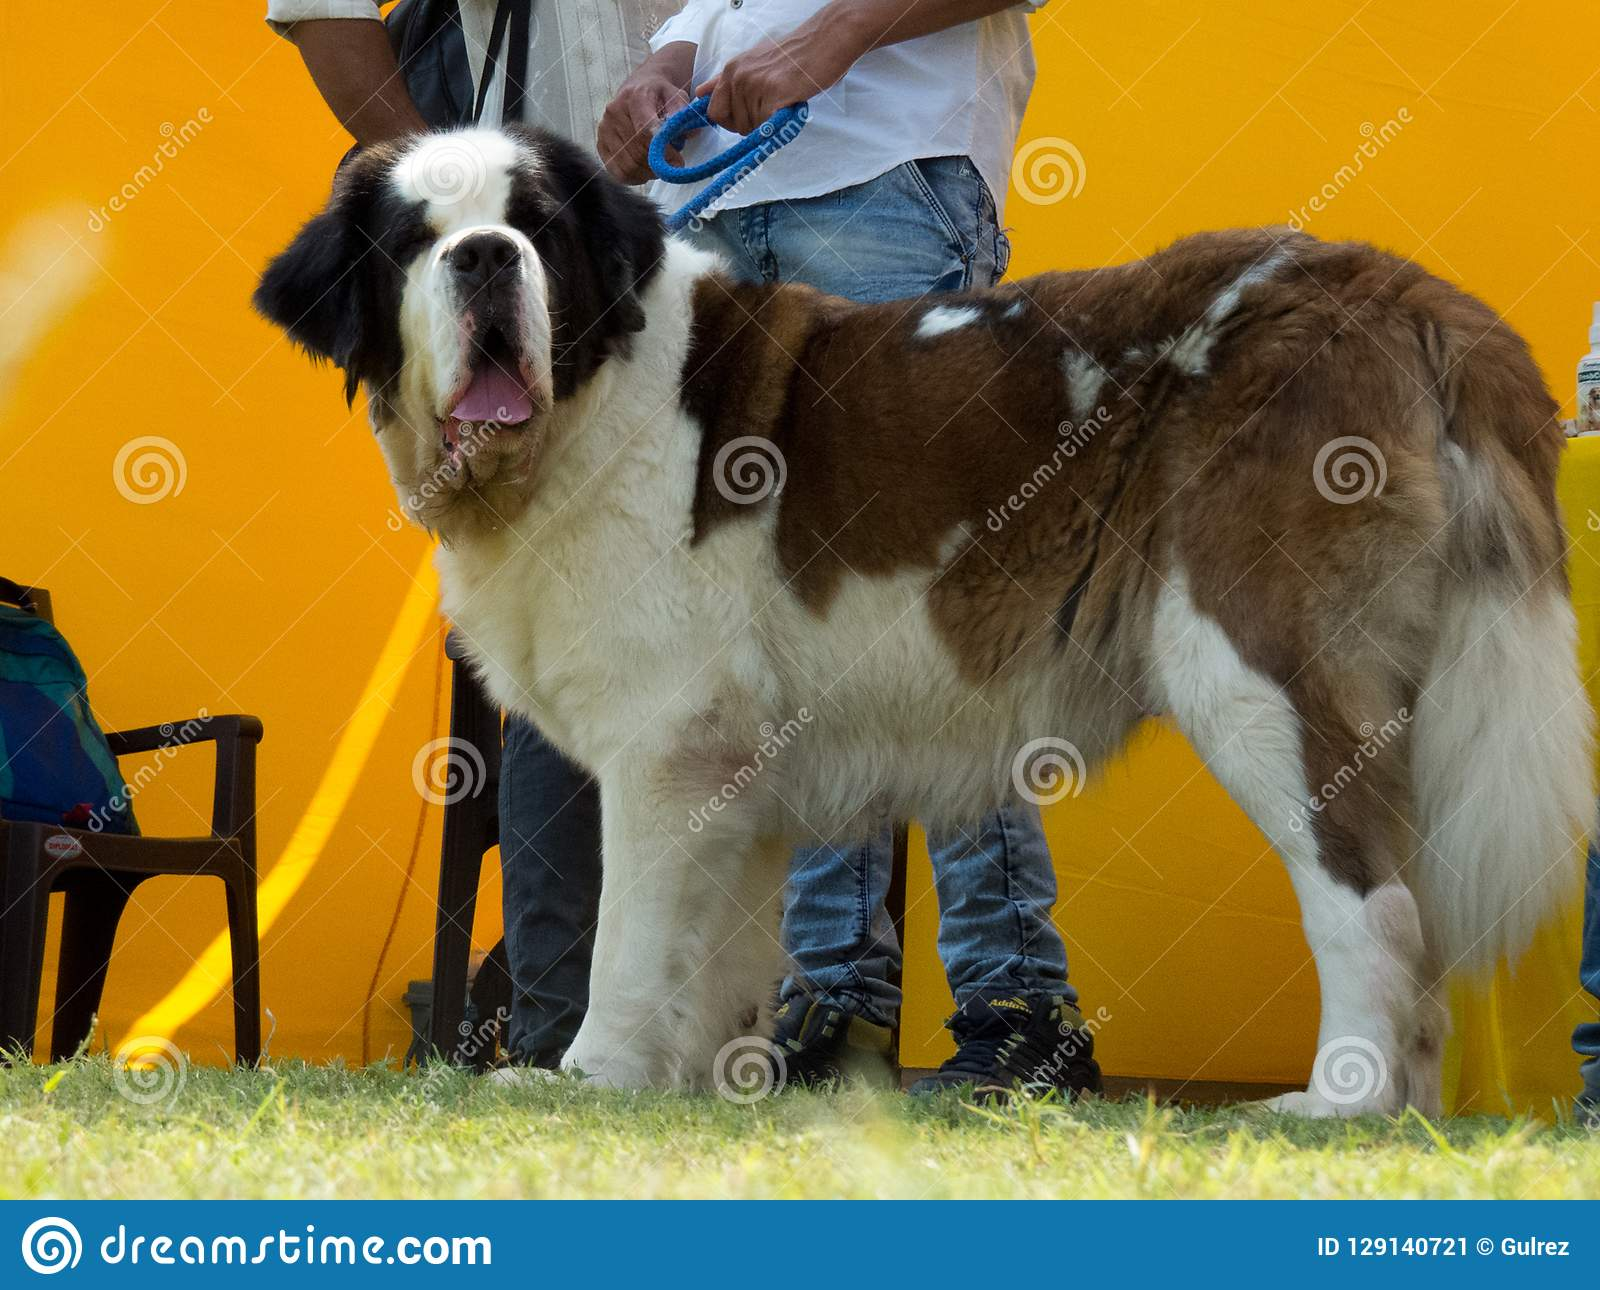 Adorable And Cuddly Big Dog St. Bernard